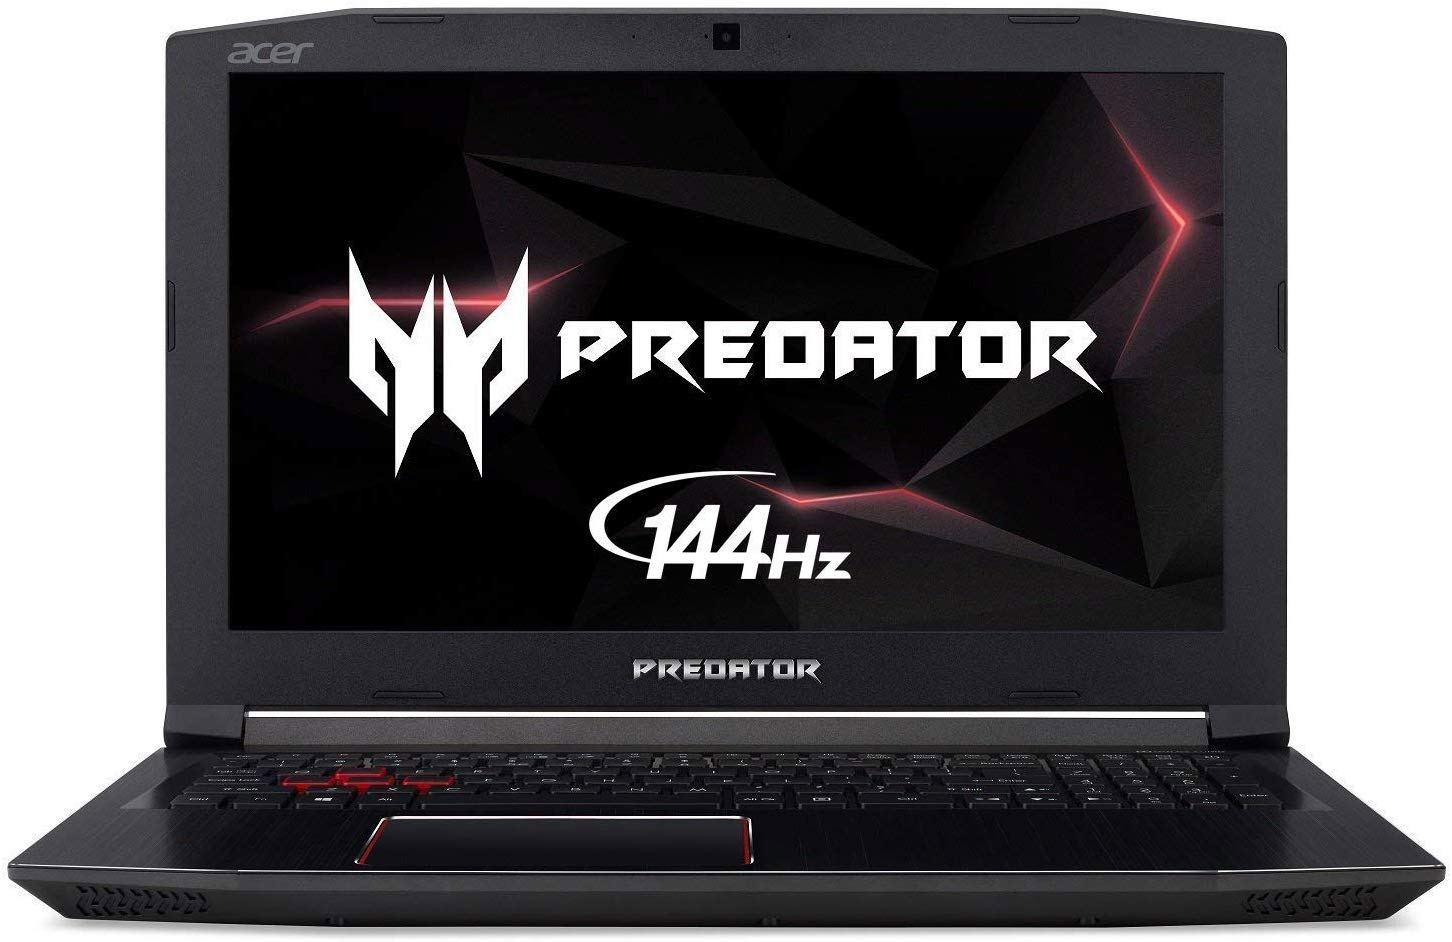 Acer Predator Helios 300 Gaming Laptop, 15.6in Full HD IPS Display Intel 6-Core i7-8750H, GeForce GTX 1060 6GB DDR5 16GB DDR4, 256GB NVMe SSD, PH315-51-78NP (Renewed)